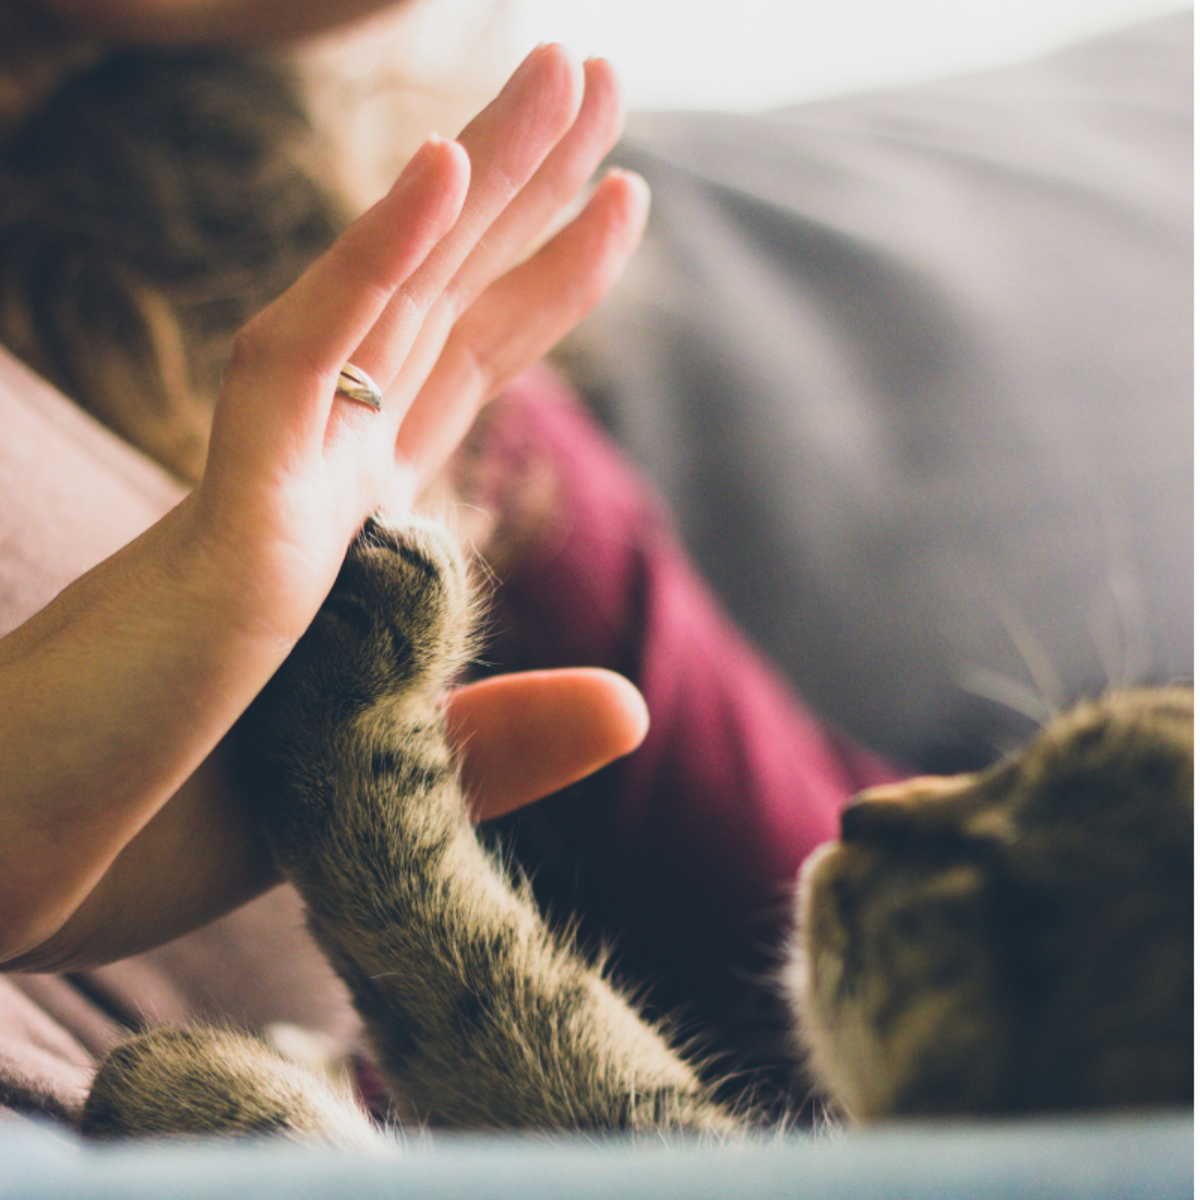 Bonding with your cat will bring the two of you closer to becoming best friends.